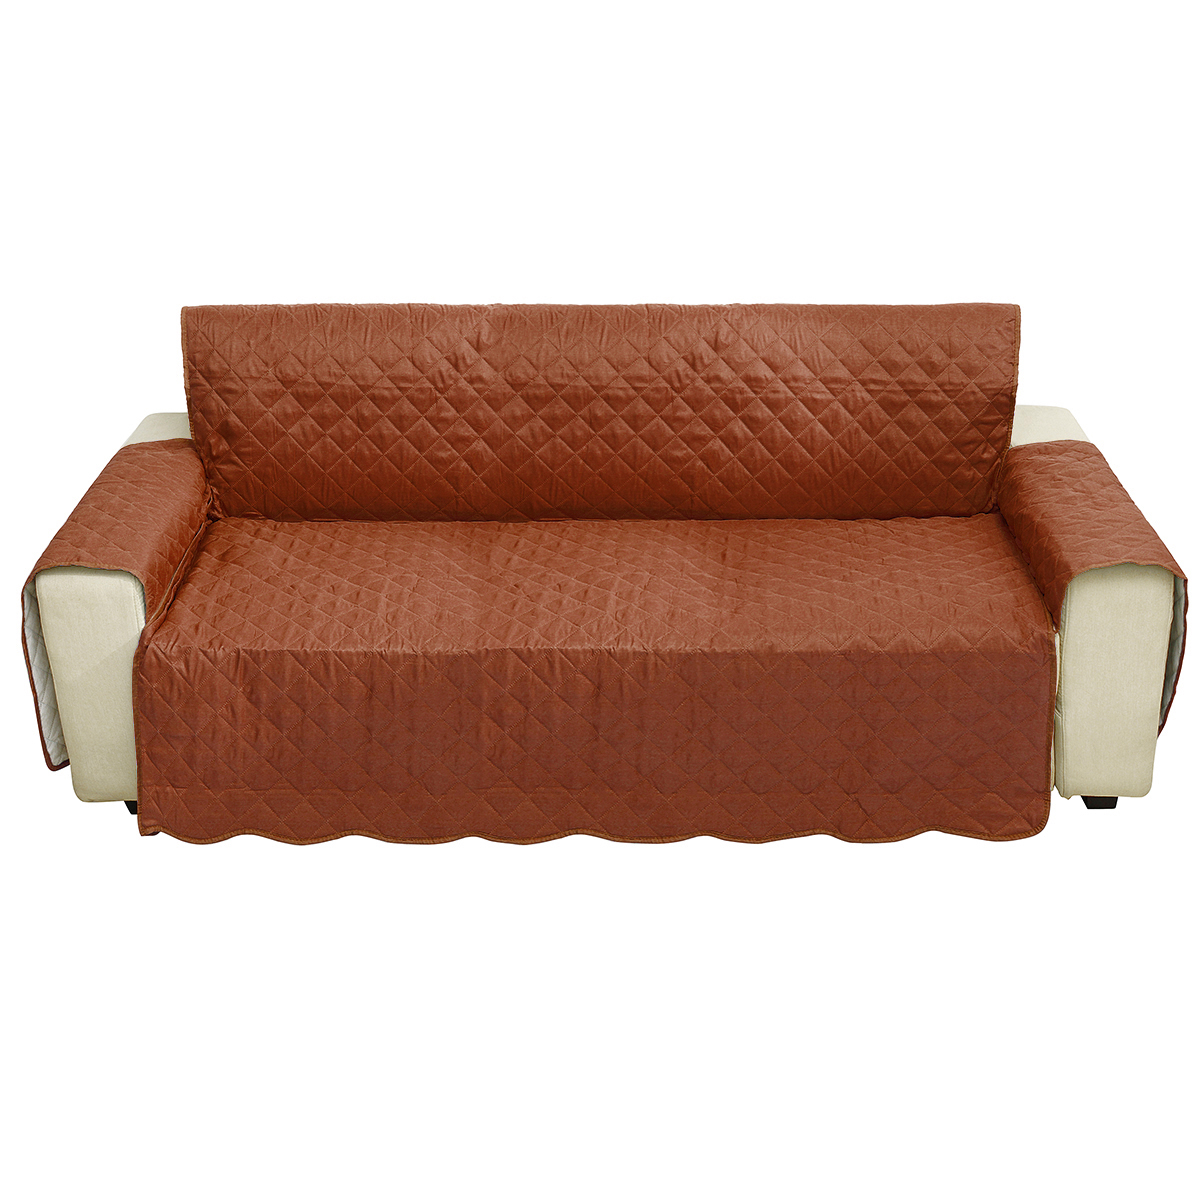 3 Seater Seats Sofa Chair Cover Living Room Home Decoration Polyester Fashion Dust-proof